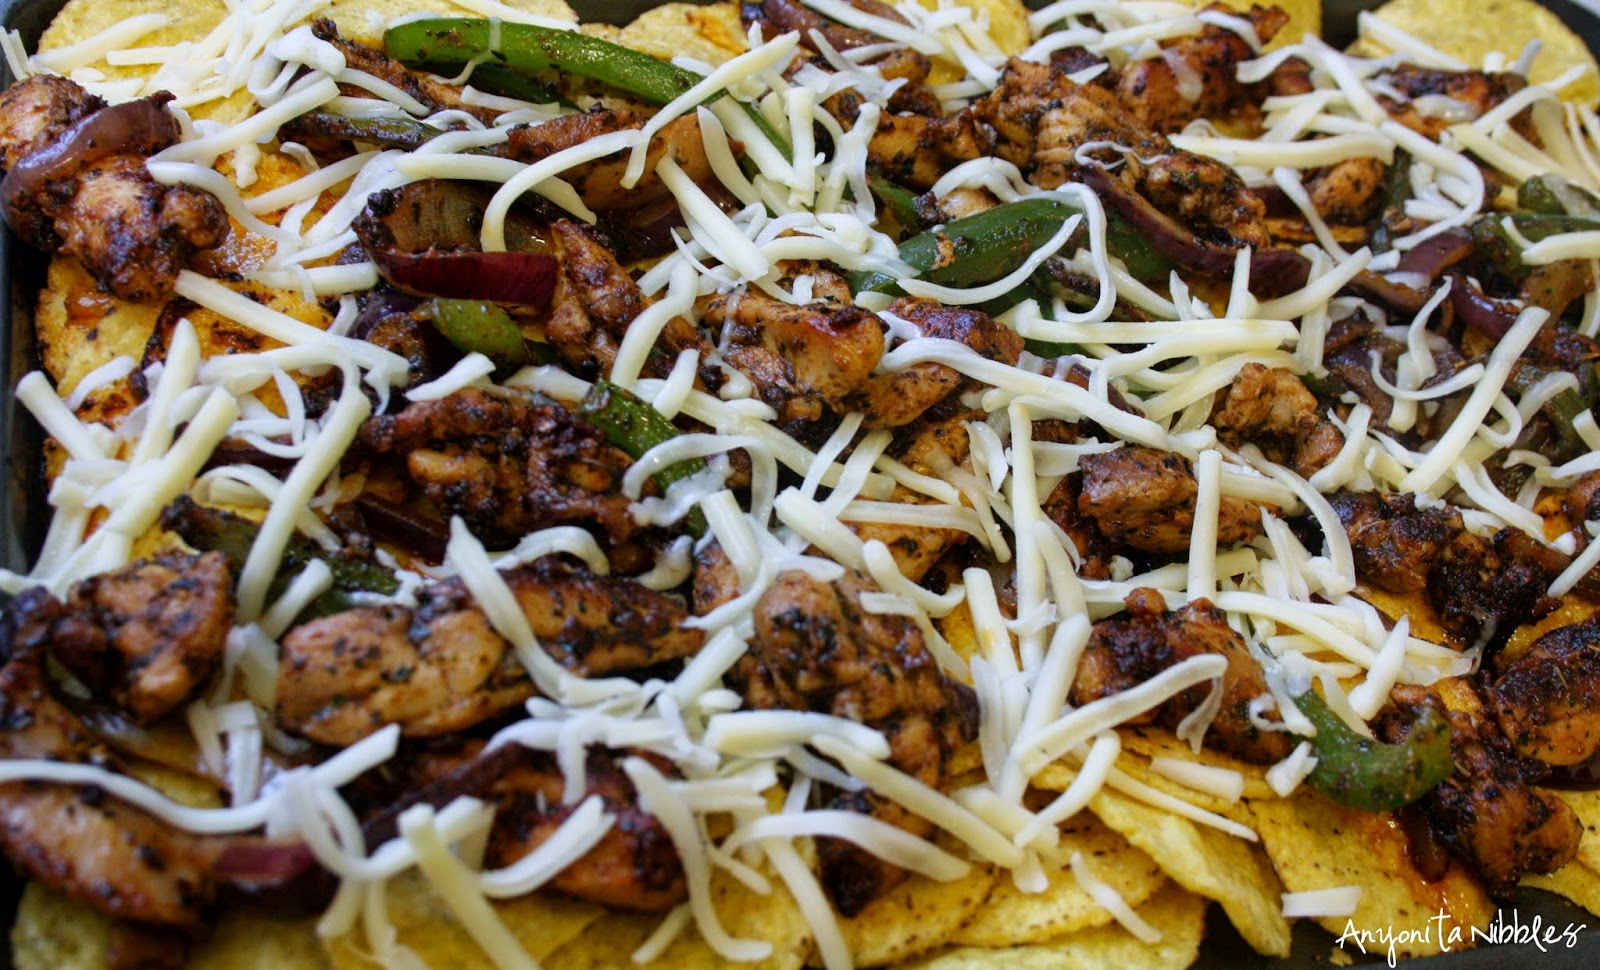 Baking the nachos gives them a crisper texture and a deeper flavor